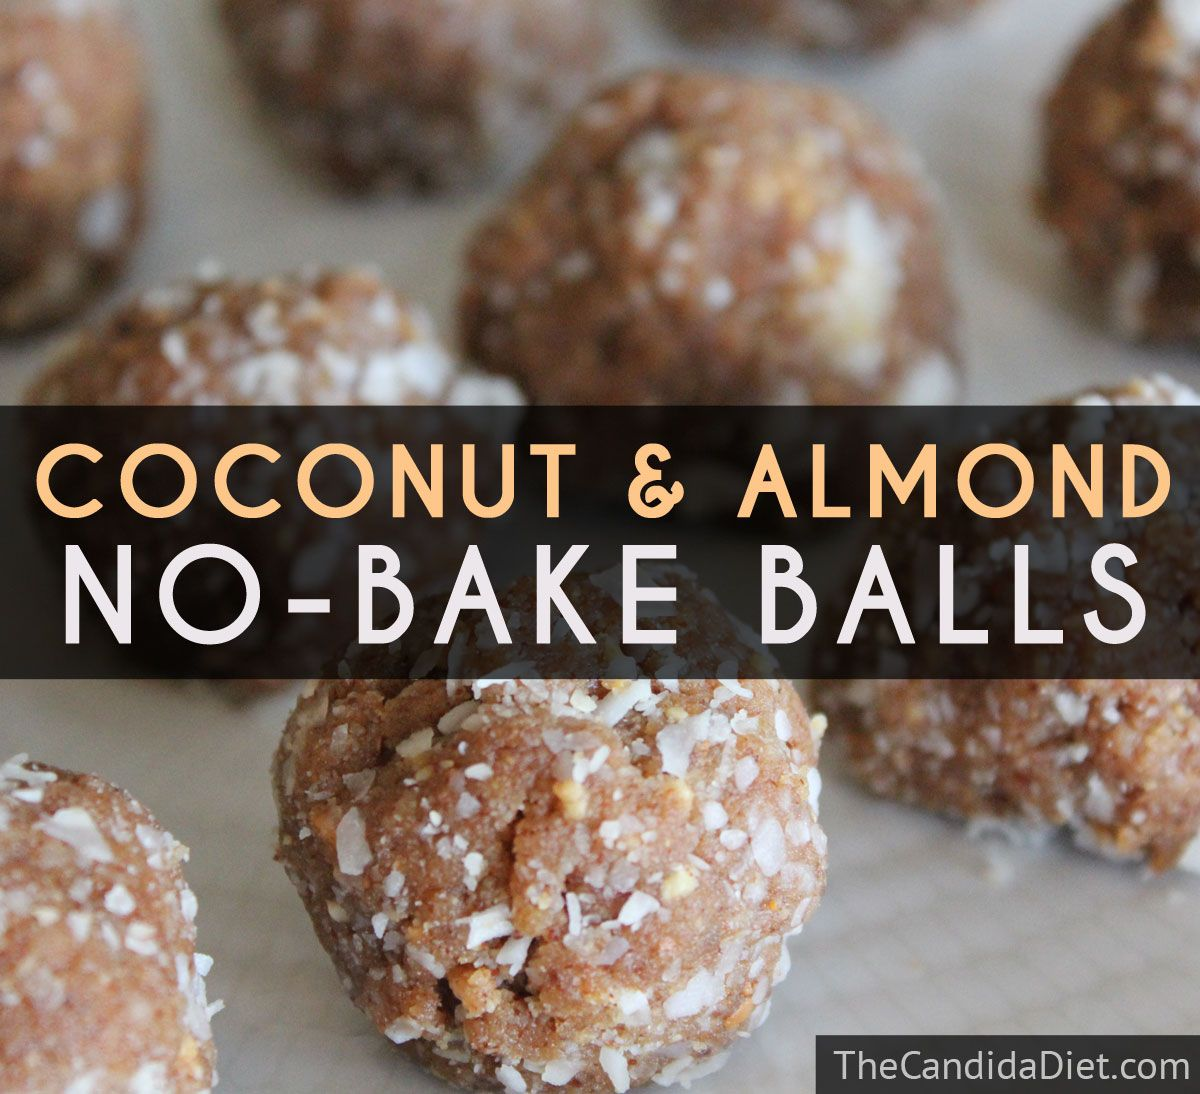 Coconut Almond No Bake Balls The Candida Diet Recipe Candida Recipes Anti Candida Recipes Candida Diet Recipes